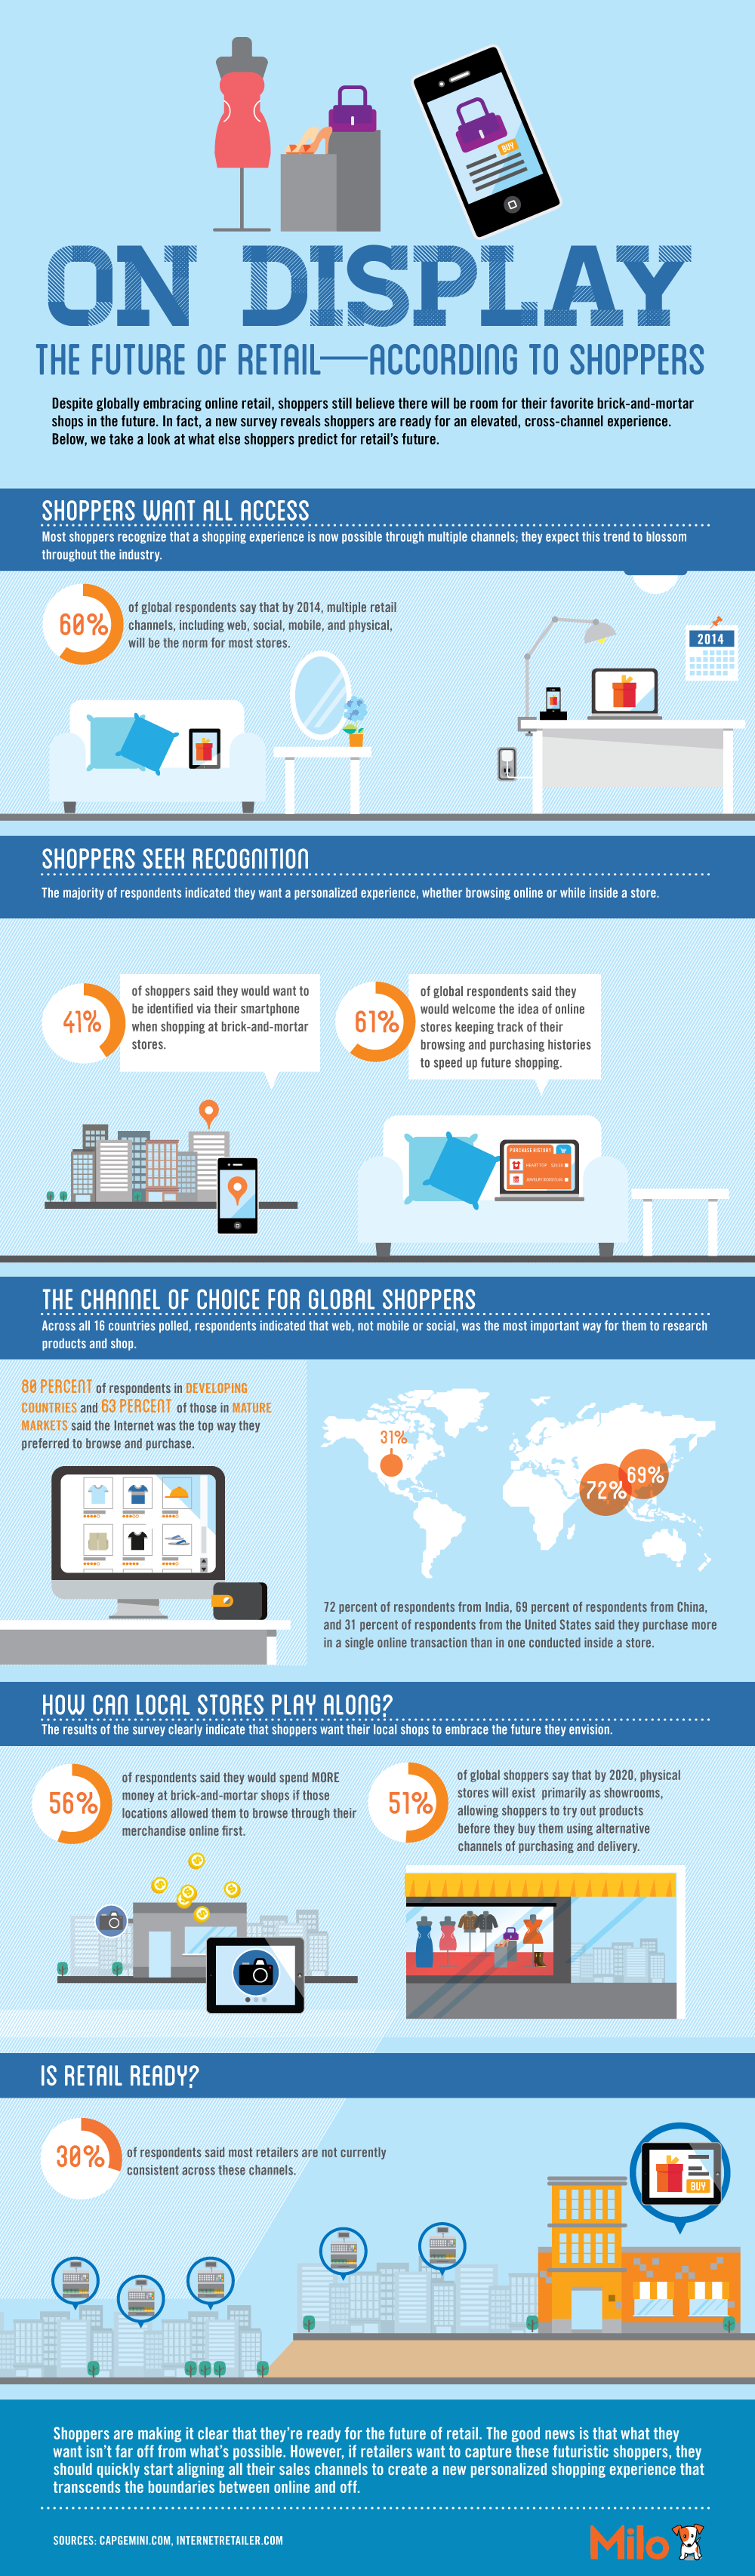 Infographic - The Future of Retail